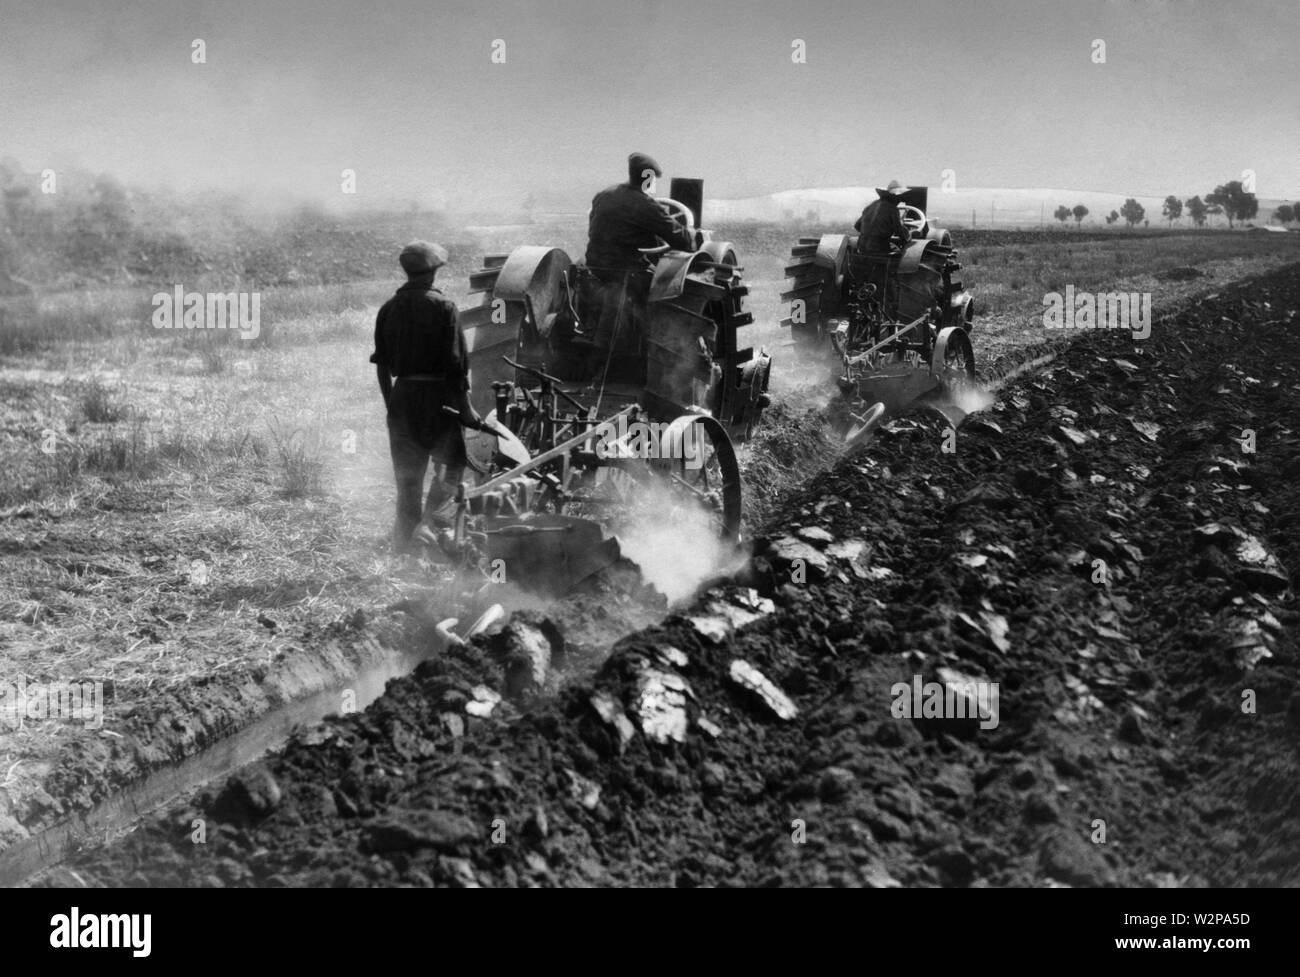 Lazio, plowing with tractors of reclaimed land, 1920-30 - Stock Image